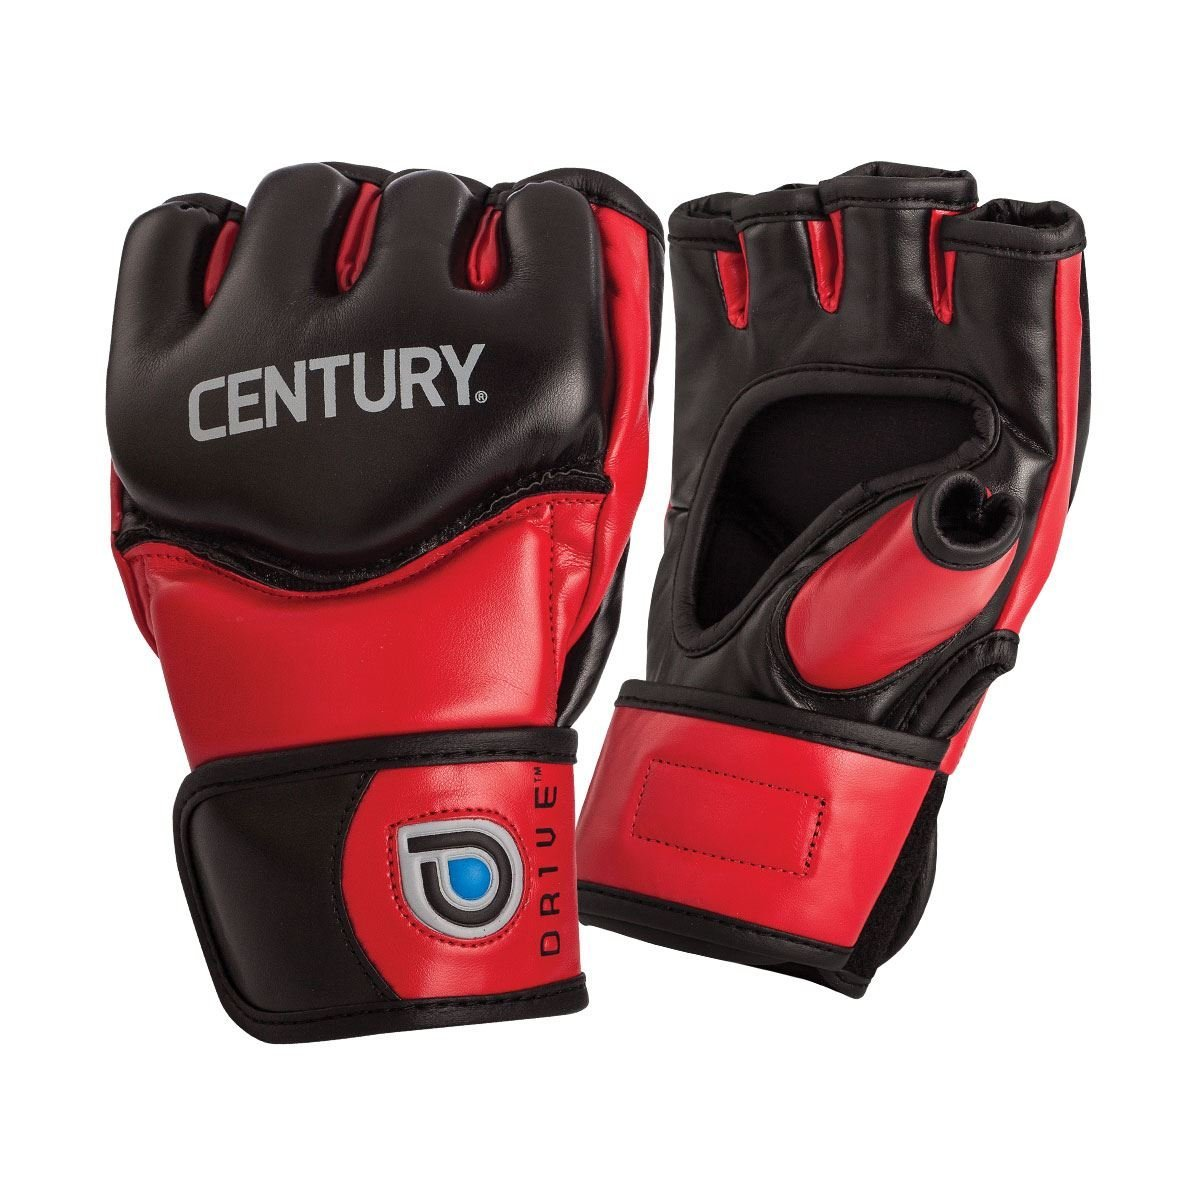 Drive Training Glove, Pads available Essential DRIVE Curved Arts Training Punch Womens Target Gloves Grappling Neoprene options Drive Mitts.., By Century